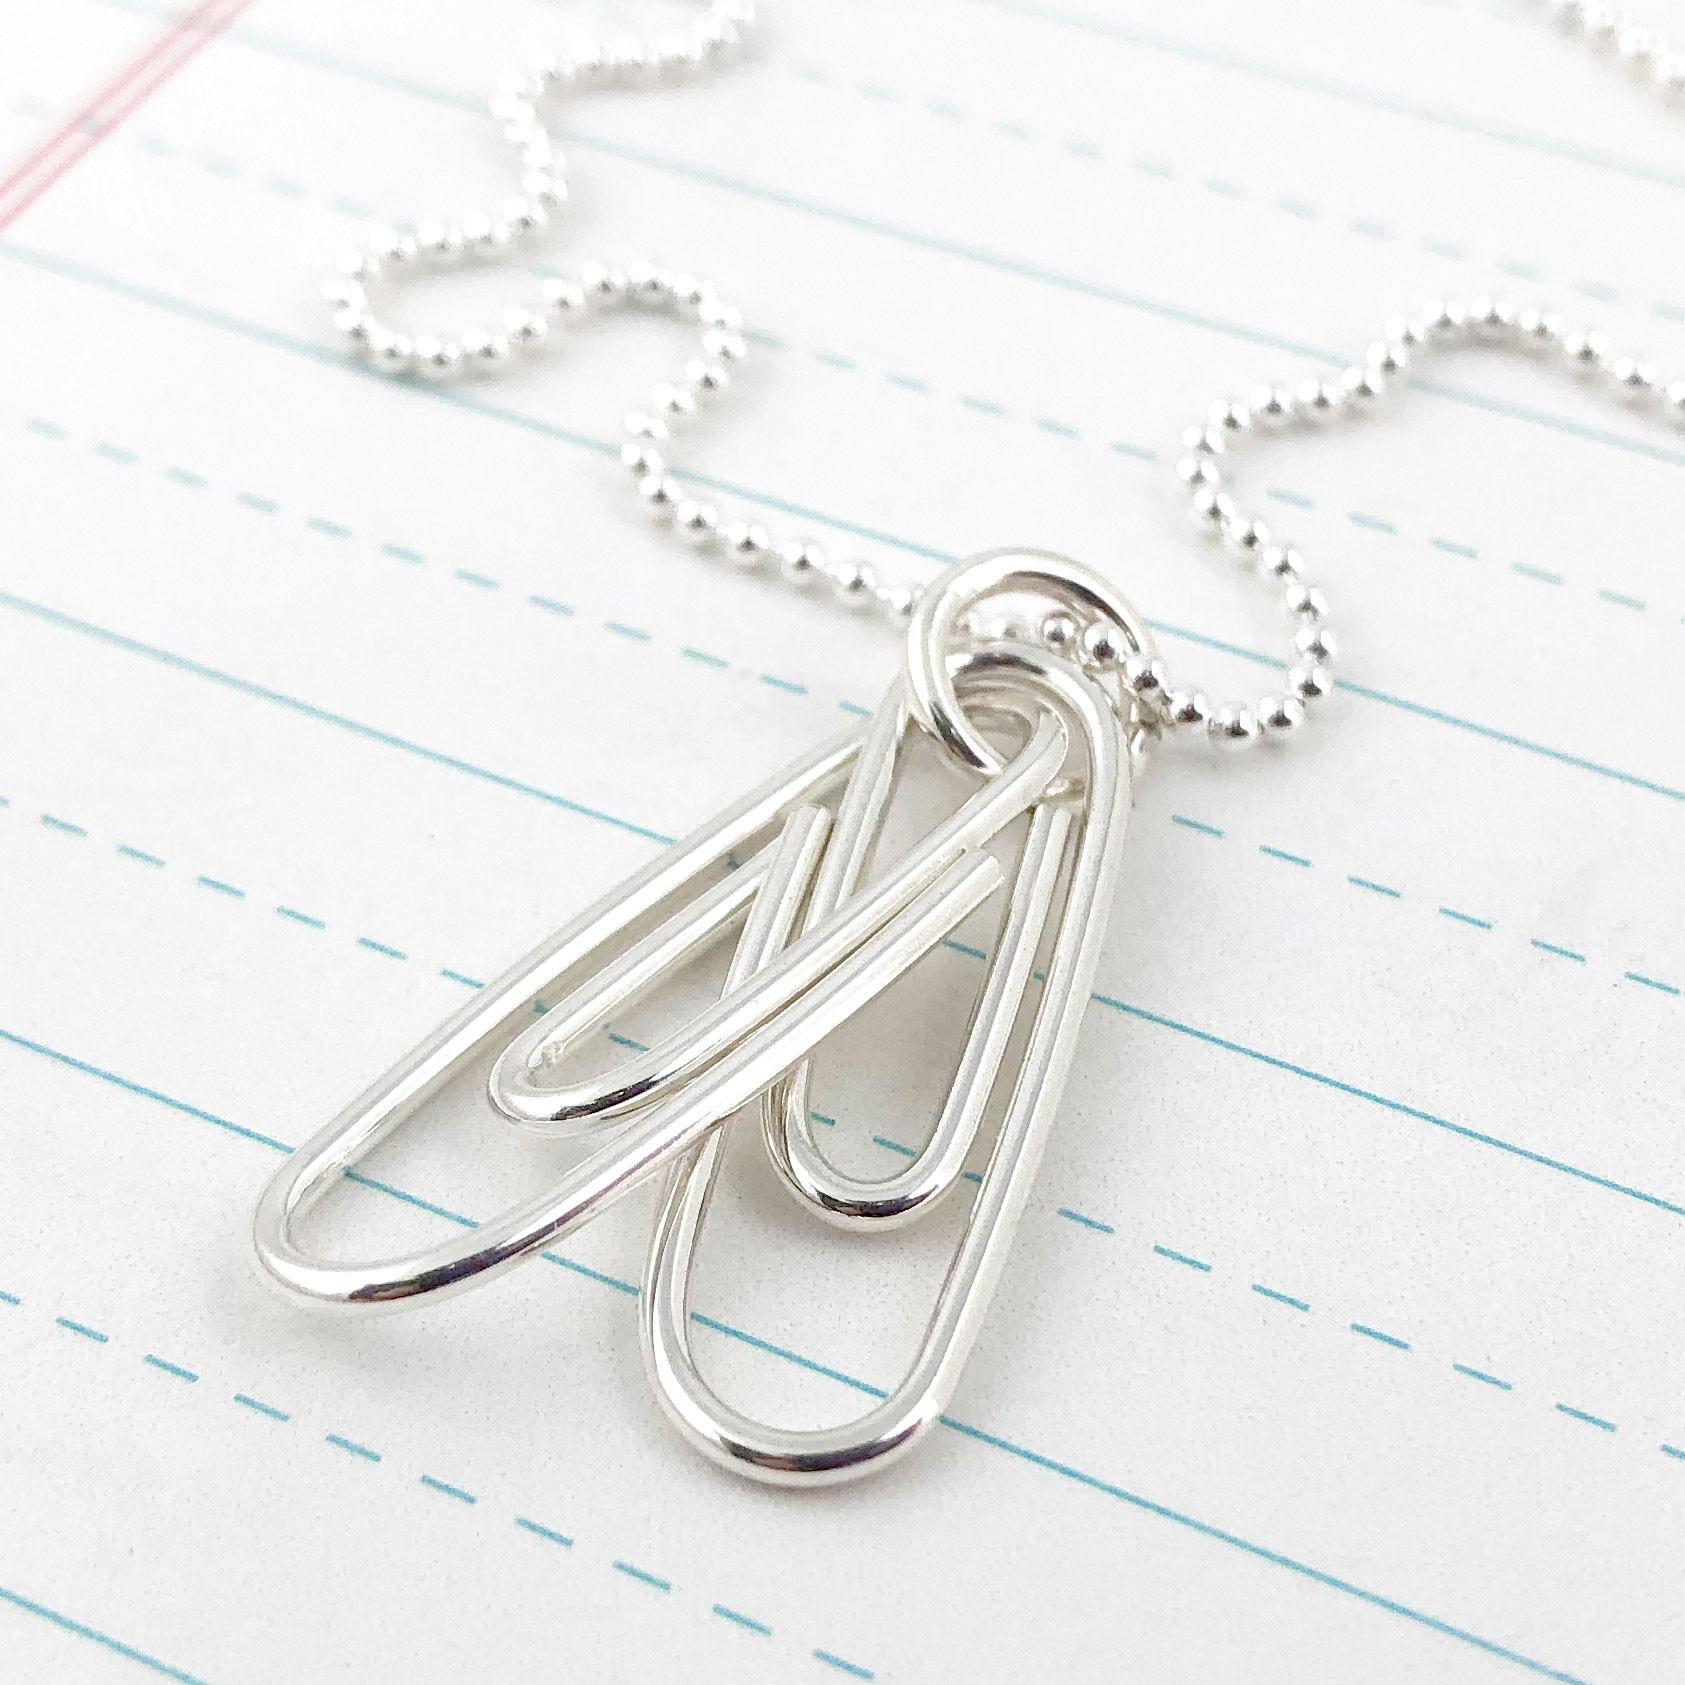 Two Linked Paperclips Necklace (Ready to Ship)